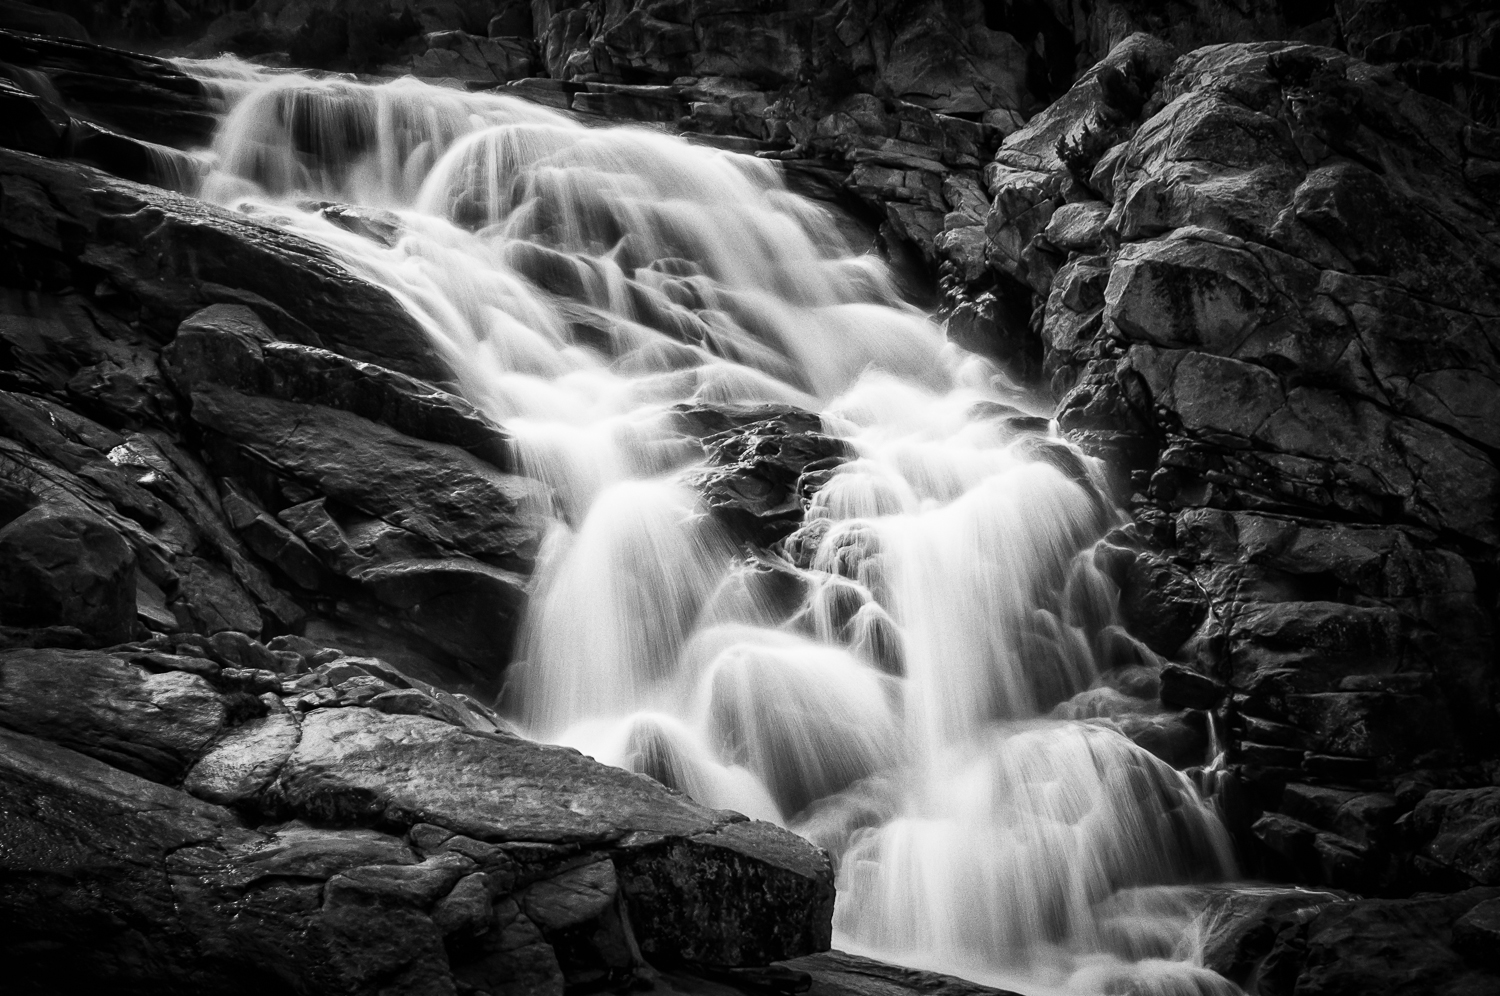 Topoka Falls - 1/2 second at f/16